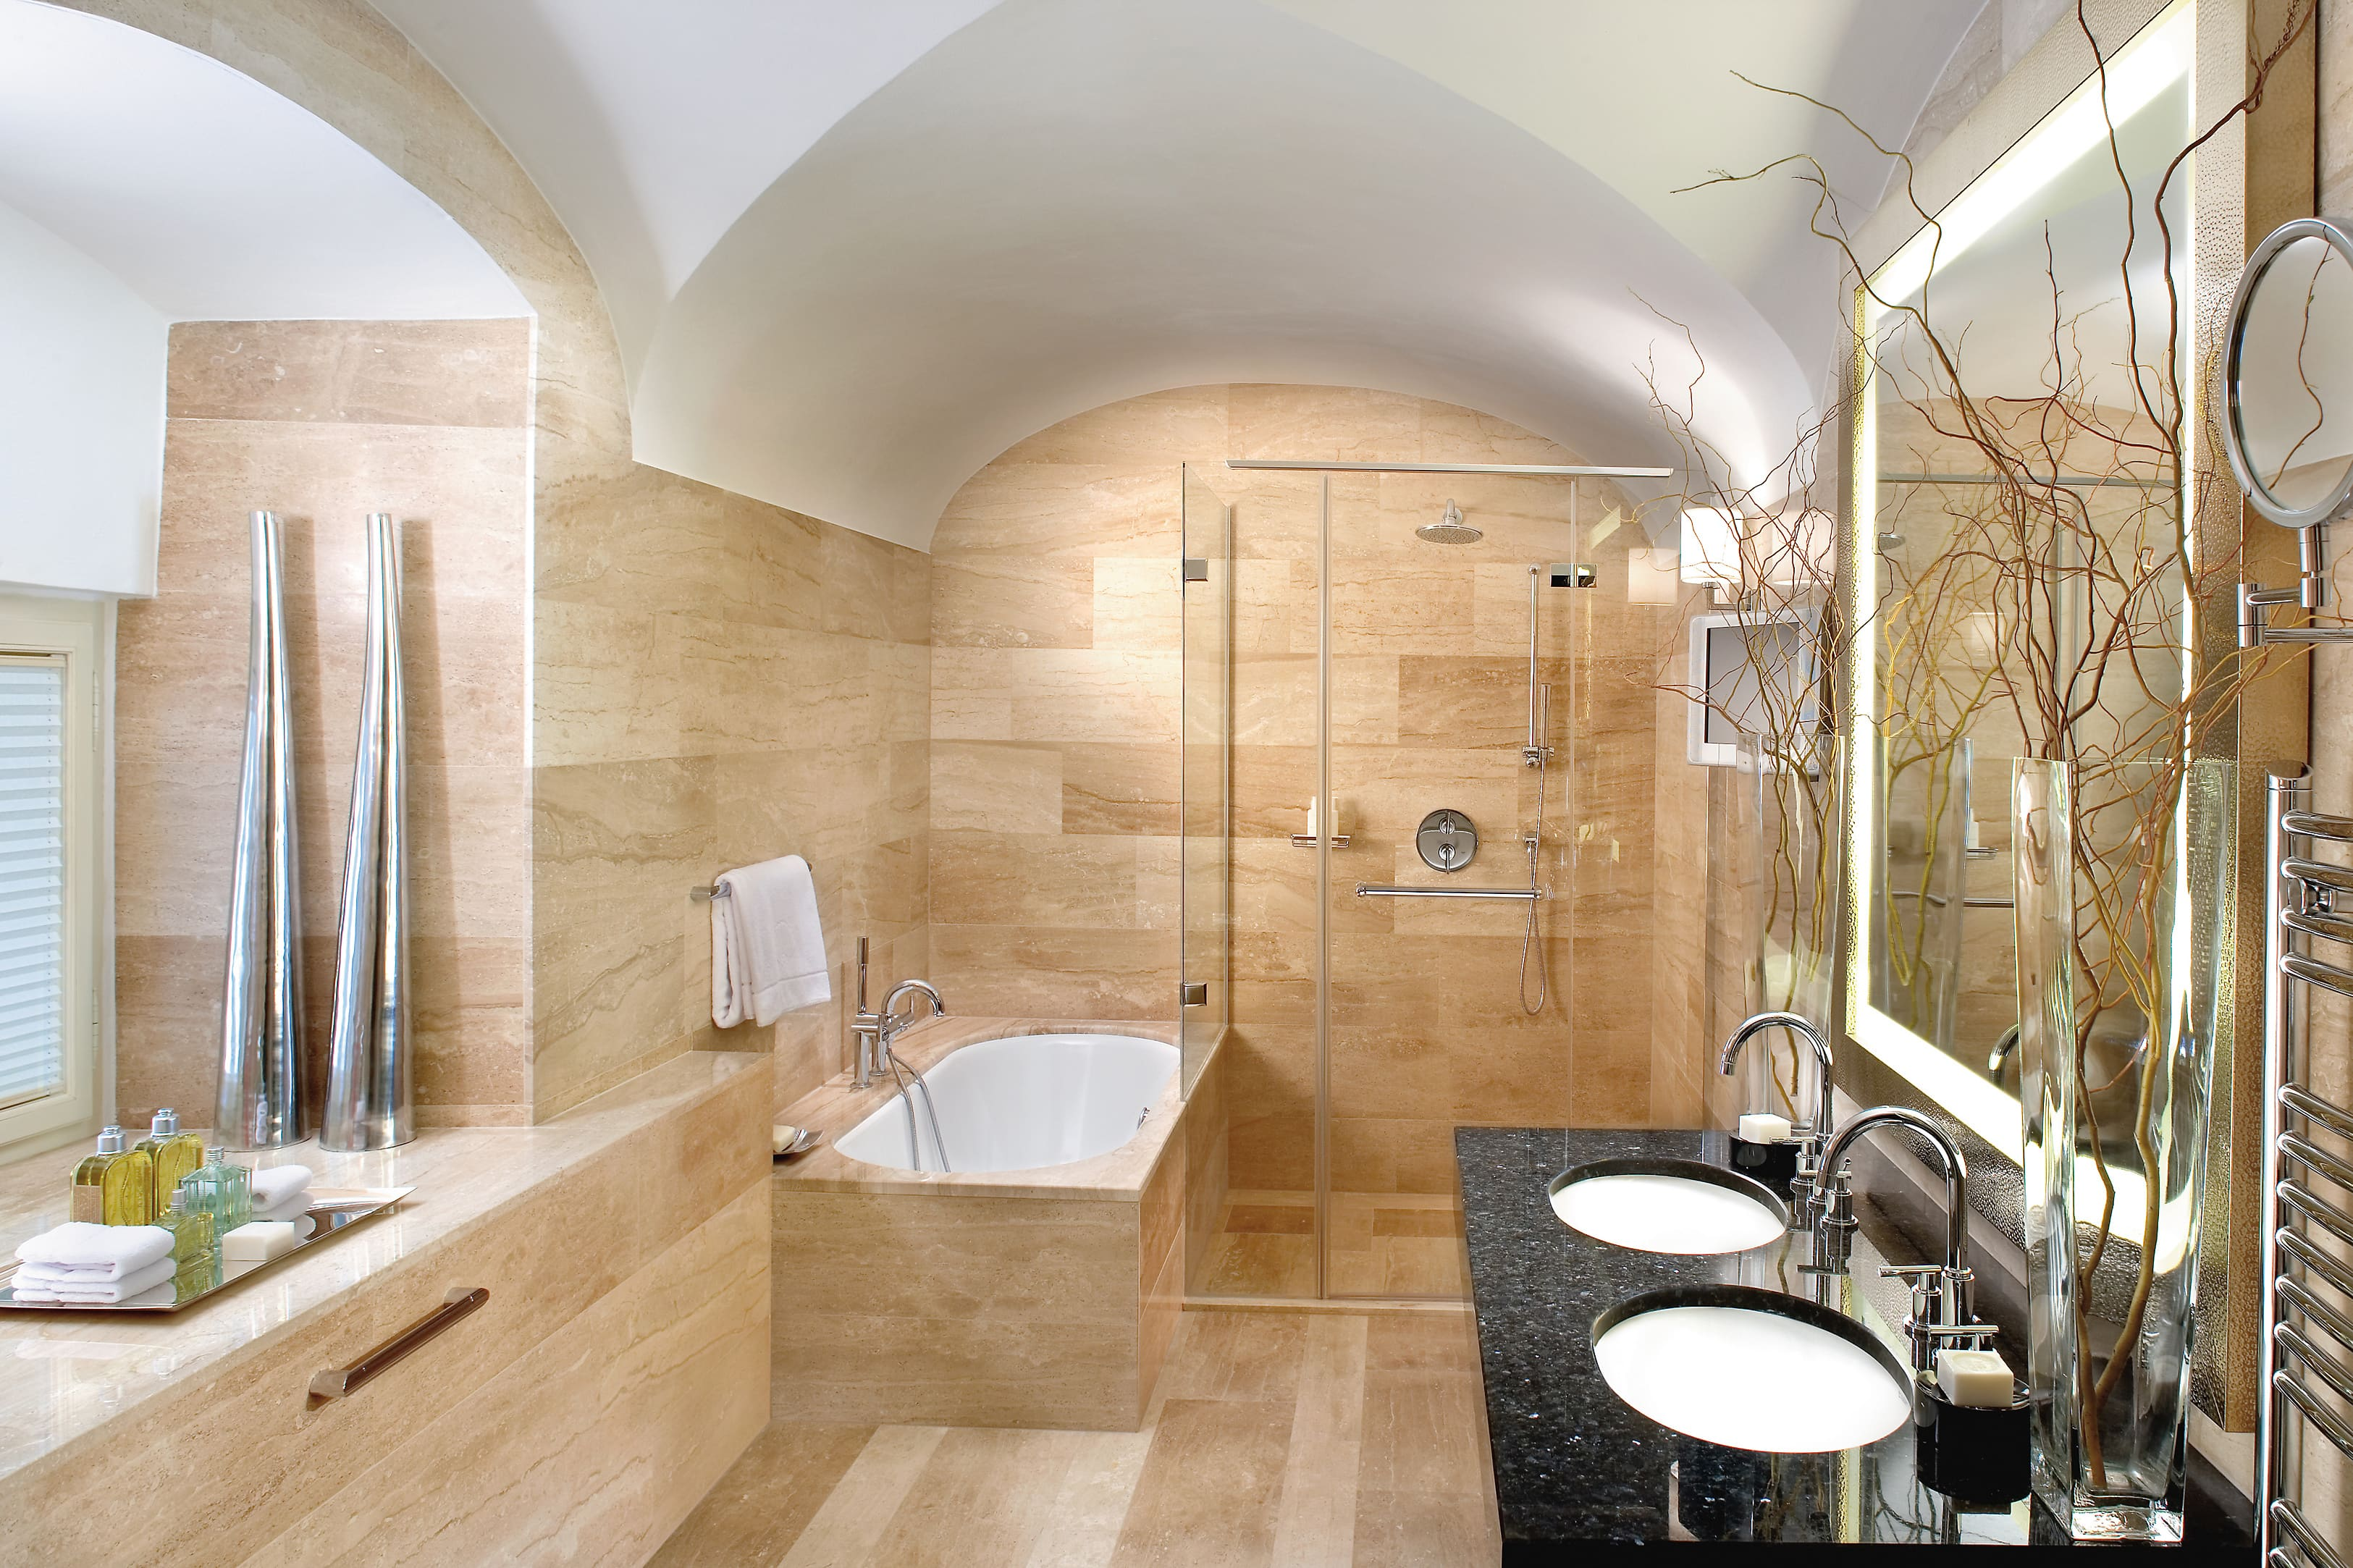 Prague hotel photo gallery mandarin oriental prague for Salle de bain luxe